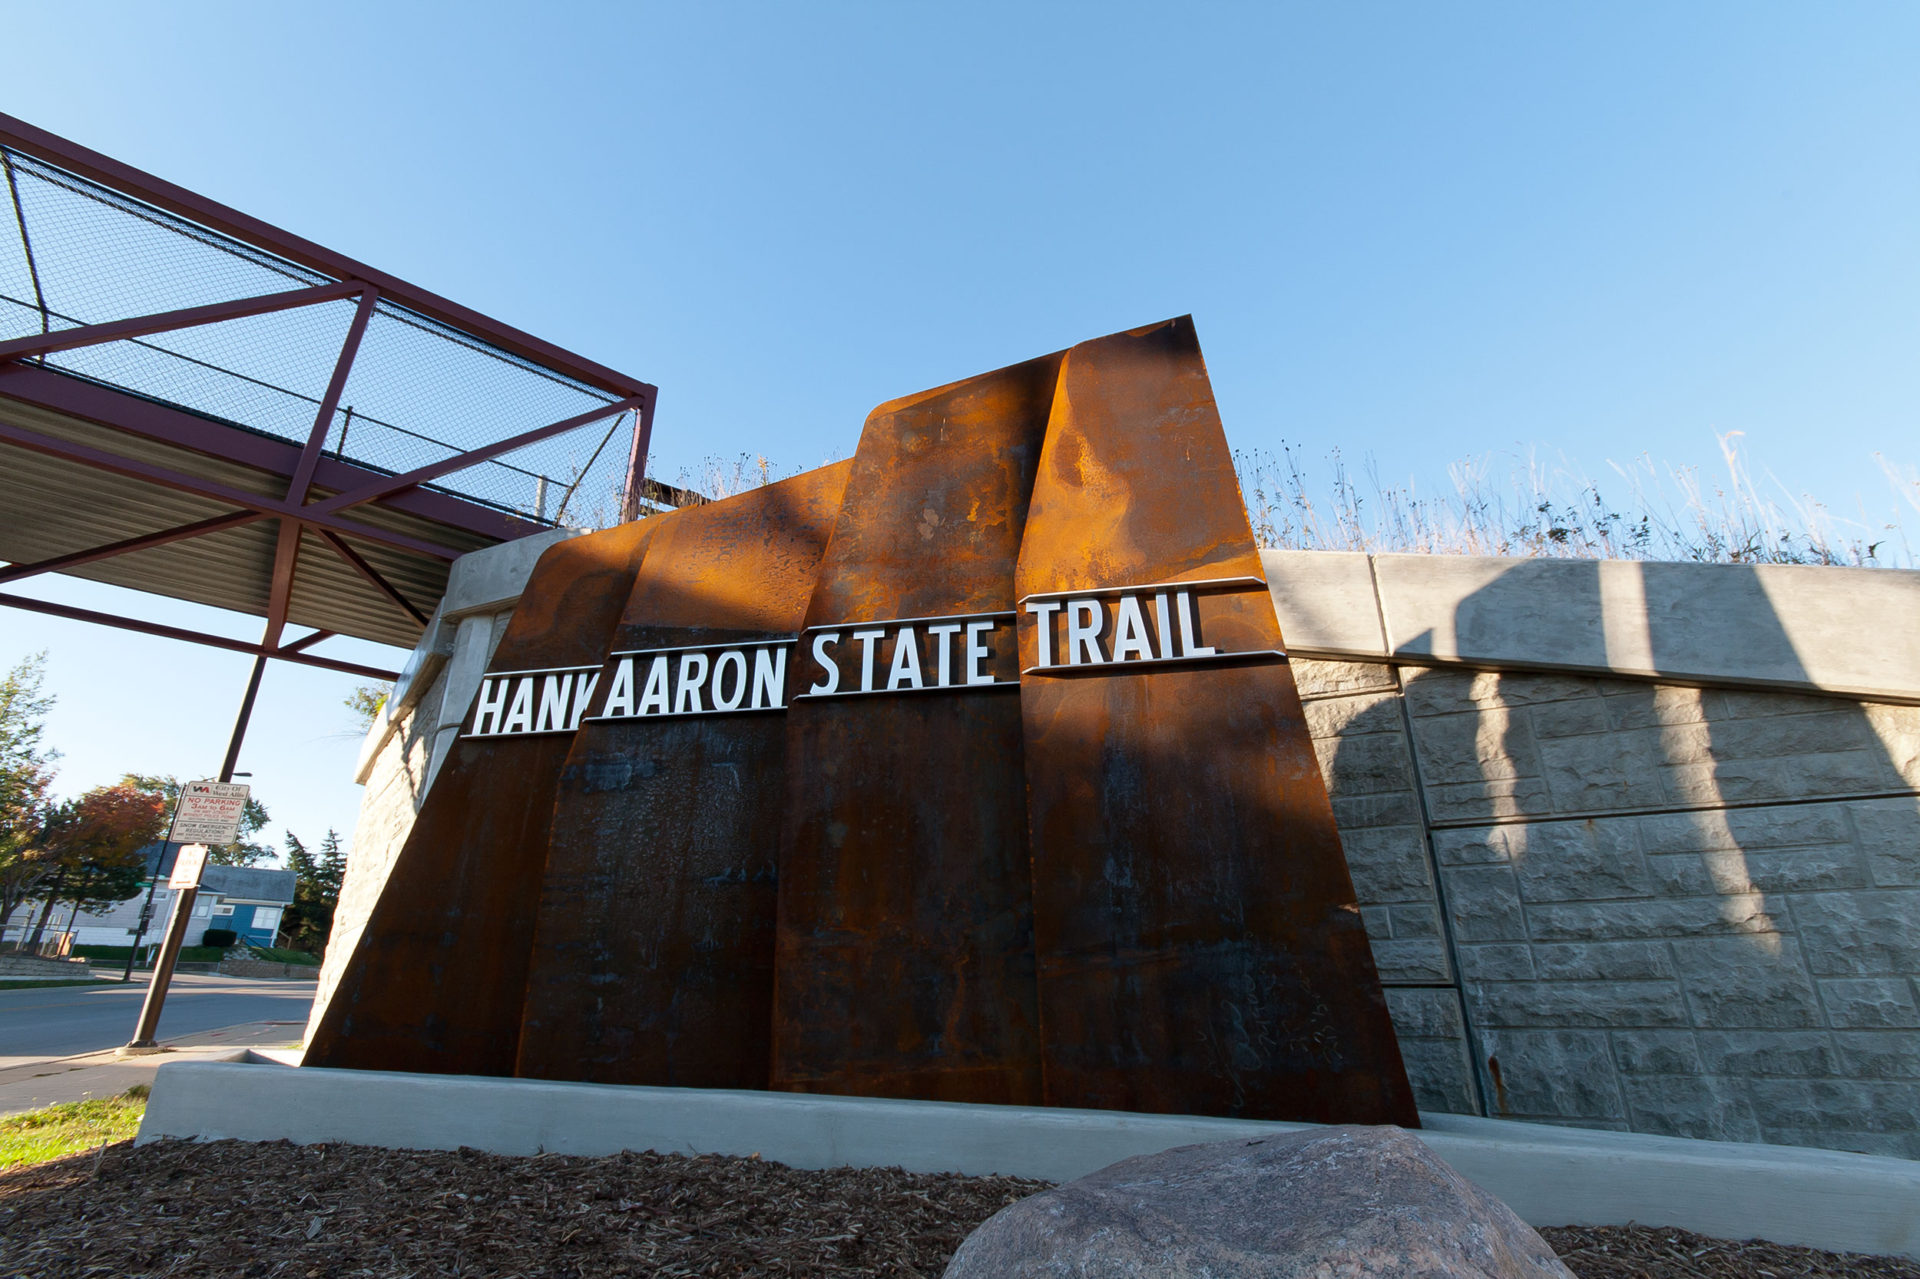 Han-Aaron-State-Trail-Monument-Sign-from